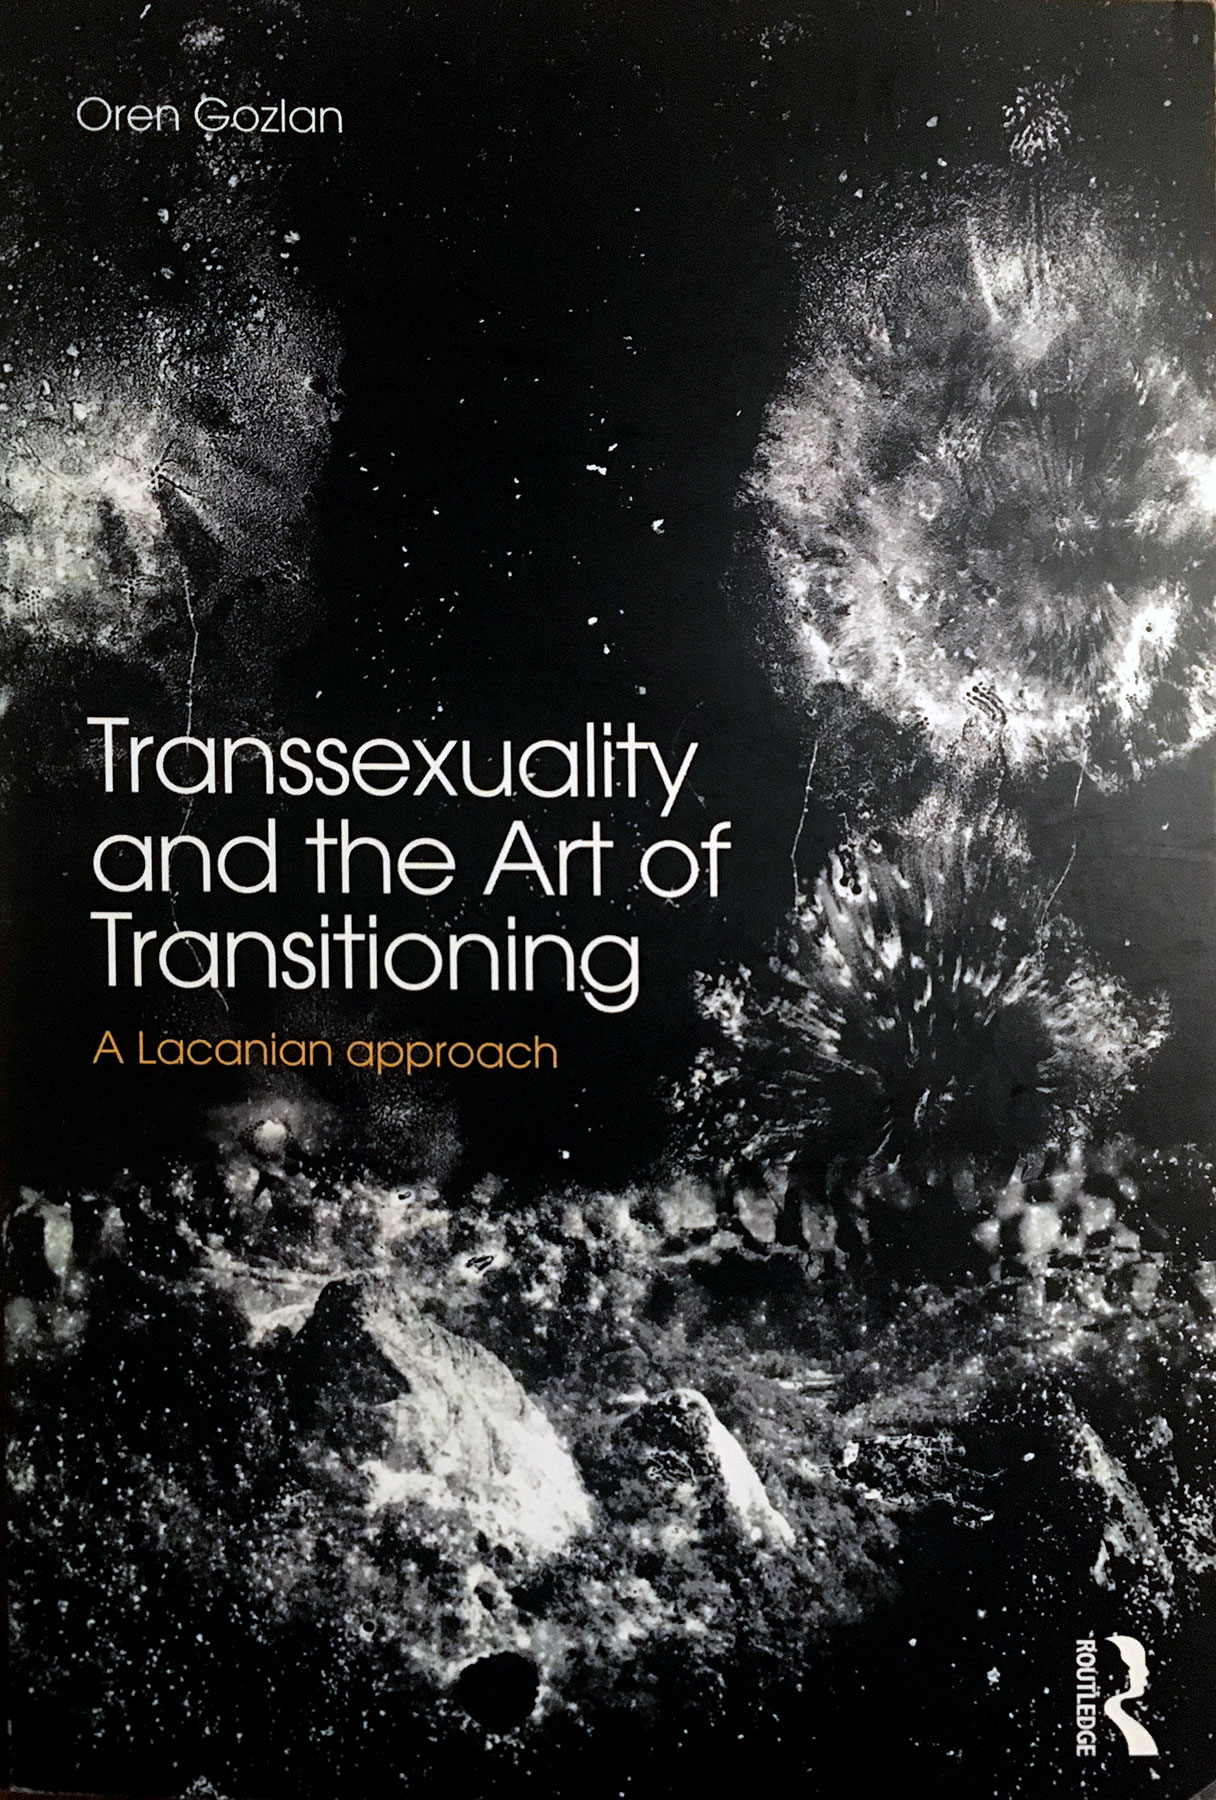 Book Cover Transsexuality and the Art of Transitioning: A Lacanian Approach by Dr. Oren Gozlan - Published by Routledge